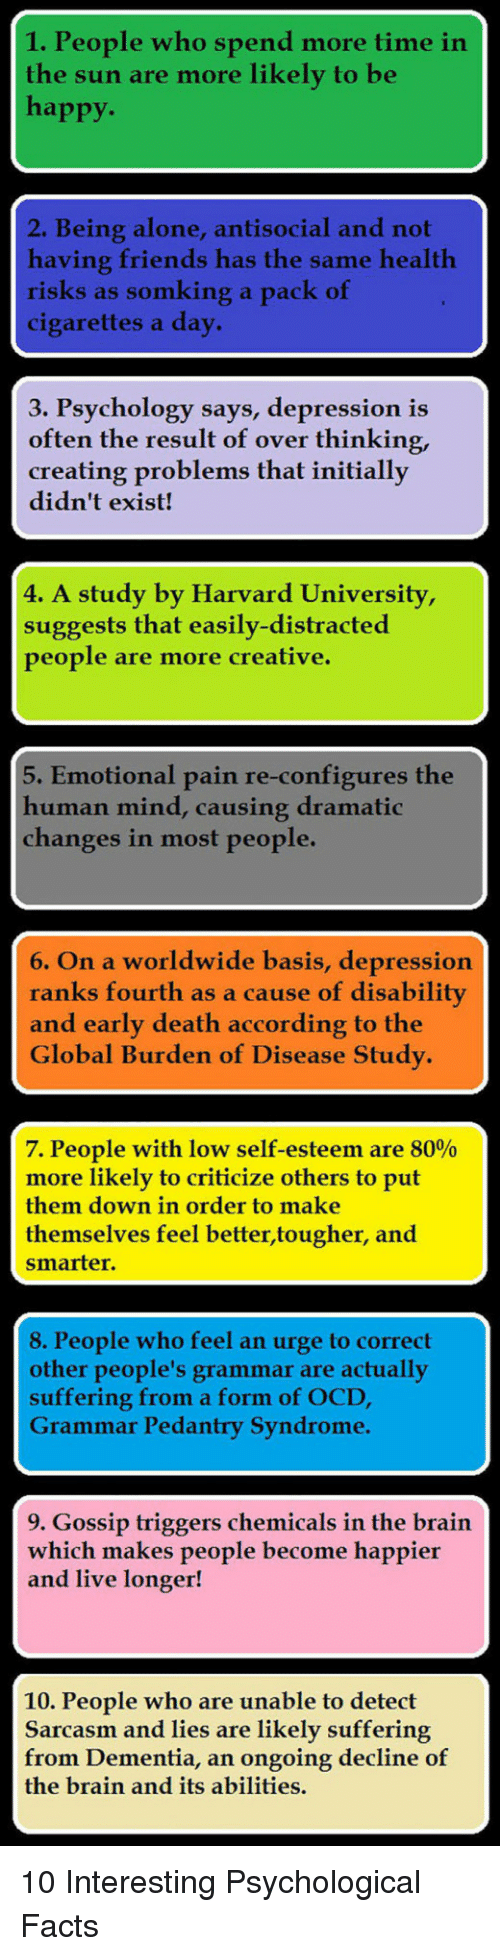 Being Alone, Facts, and Friends: 1. People who spend more time in  the sun are more likely to be  happy  Being alone, antisocial and not  having friends has the same health  risks as somking a pack of  cigarettes a day.  3. Psychology says, depression is  often the result of over thinking,  creating problems that initially  didn't exist!  4. A study by Harvard University  suggests that easily-distracted  people are more creative  5. Emotional pain re-configures the  human mind, causing dramatic  changes in most people  6. On a worldwide basis, depression  ranks fourth as a cause of disability  and early death according to the  Global Burden of Disease Study  People with low self-esteem are 80%  more likely to criticize others to put  them down in order to make  themselves feel better,tougher, and  smarter.  8. People who feel an urge to correct  other people's grammar are actually  suffering from a form of OCD  rammar Pedantry Syndrome  9. Gossip triggers chemicals in the brain  which makes people become happier  and live longer!  10. People who are unable to detect  Sarcasm and lies are likely suffering  from Dementia, an ongoing decline of  the brain and its abilities <p>10 Interesting Psychological Facts</p>